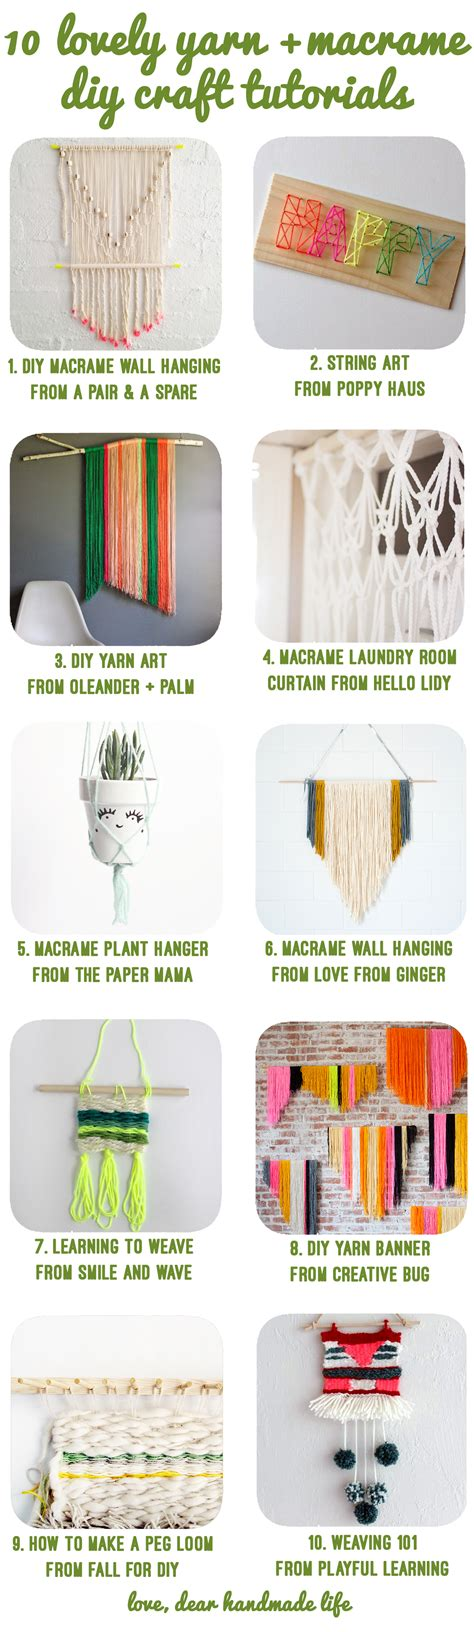 Handmade Craft Tutorials - 10 lovely yarn macrame diy craft tutorials dear